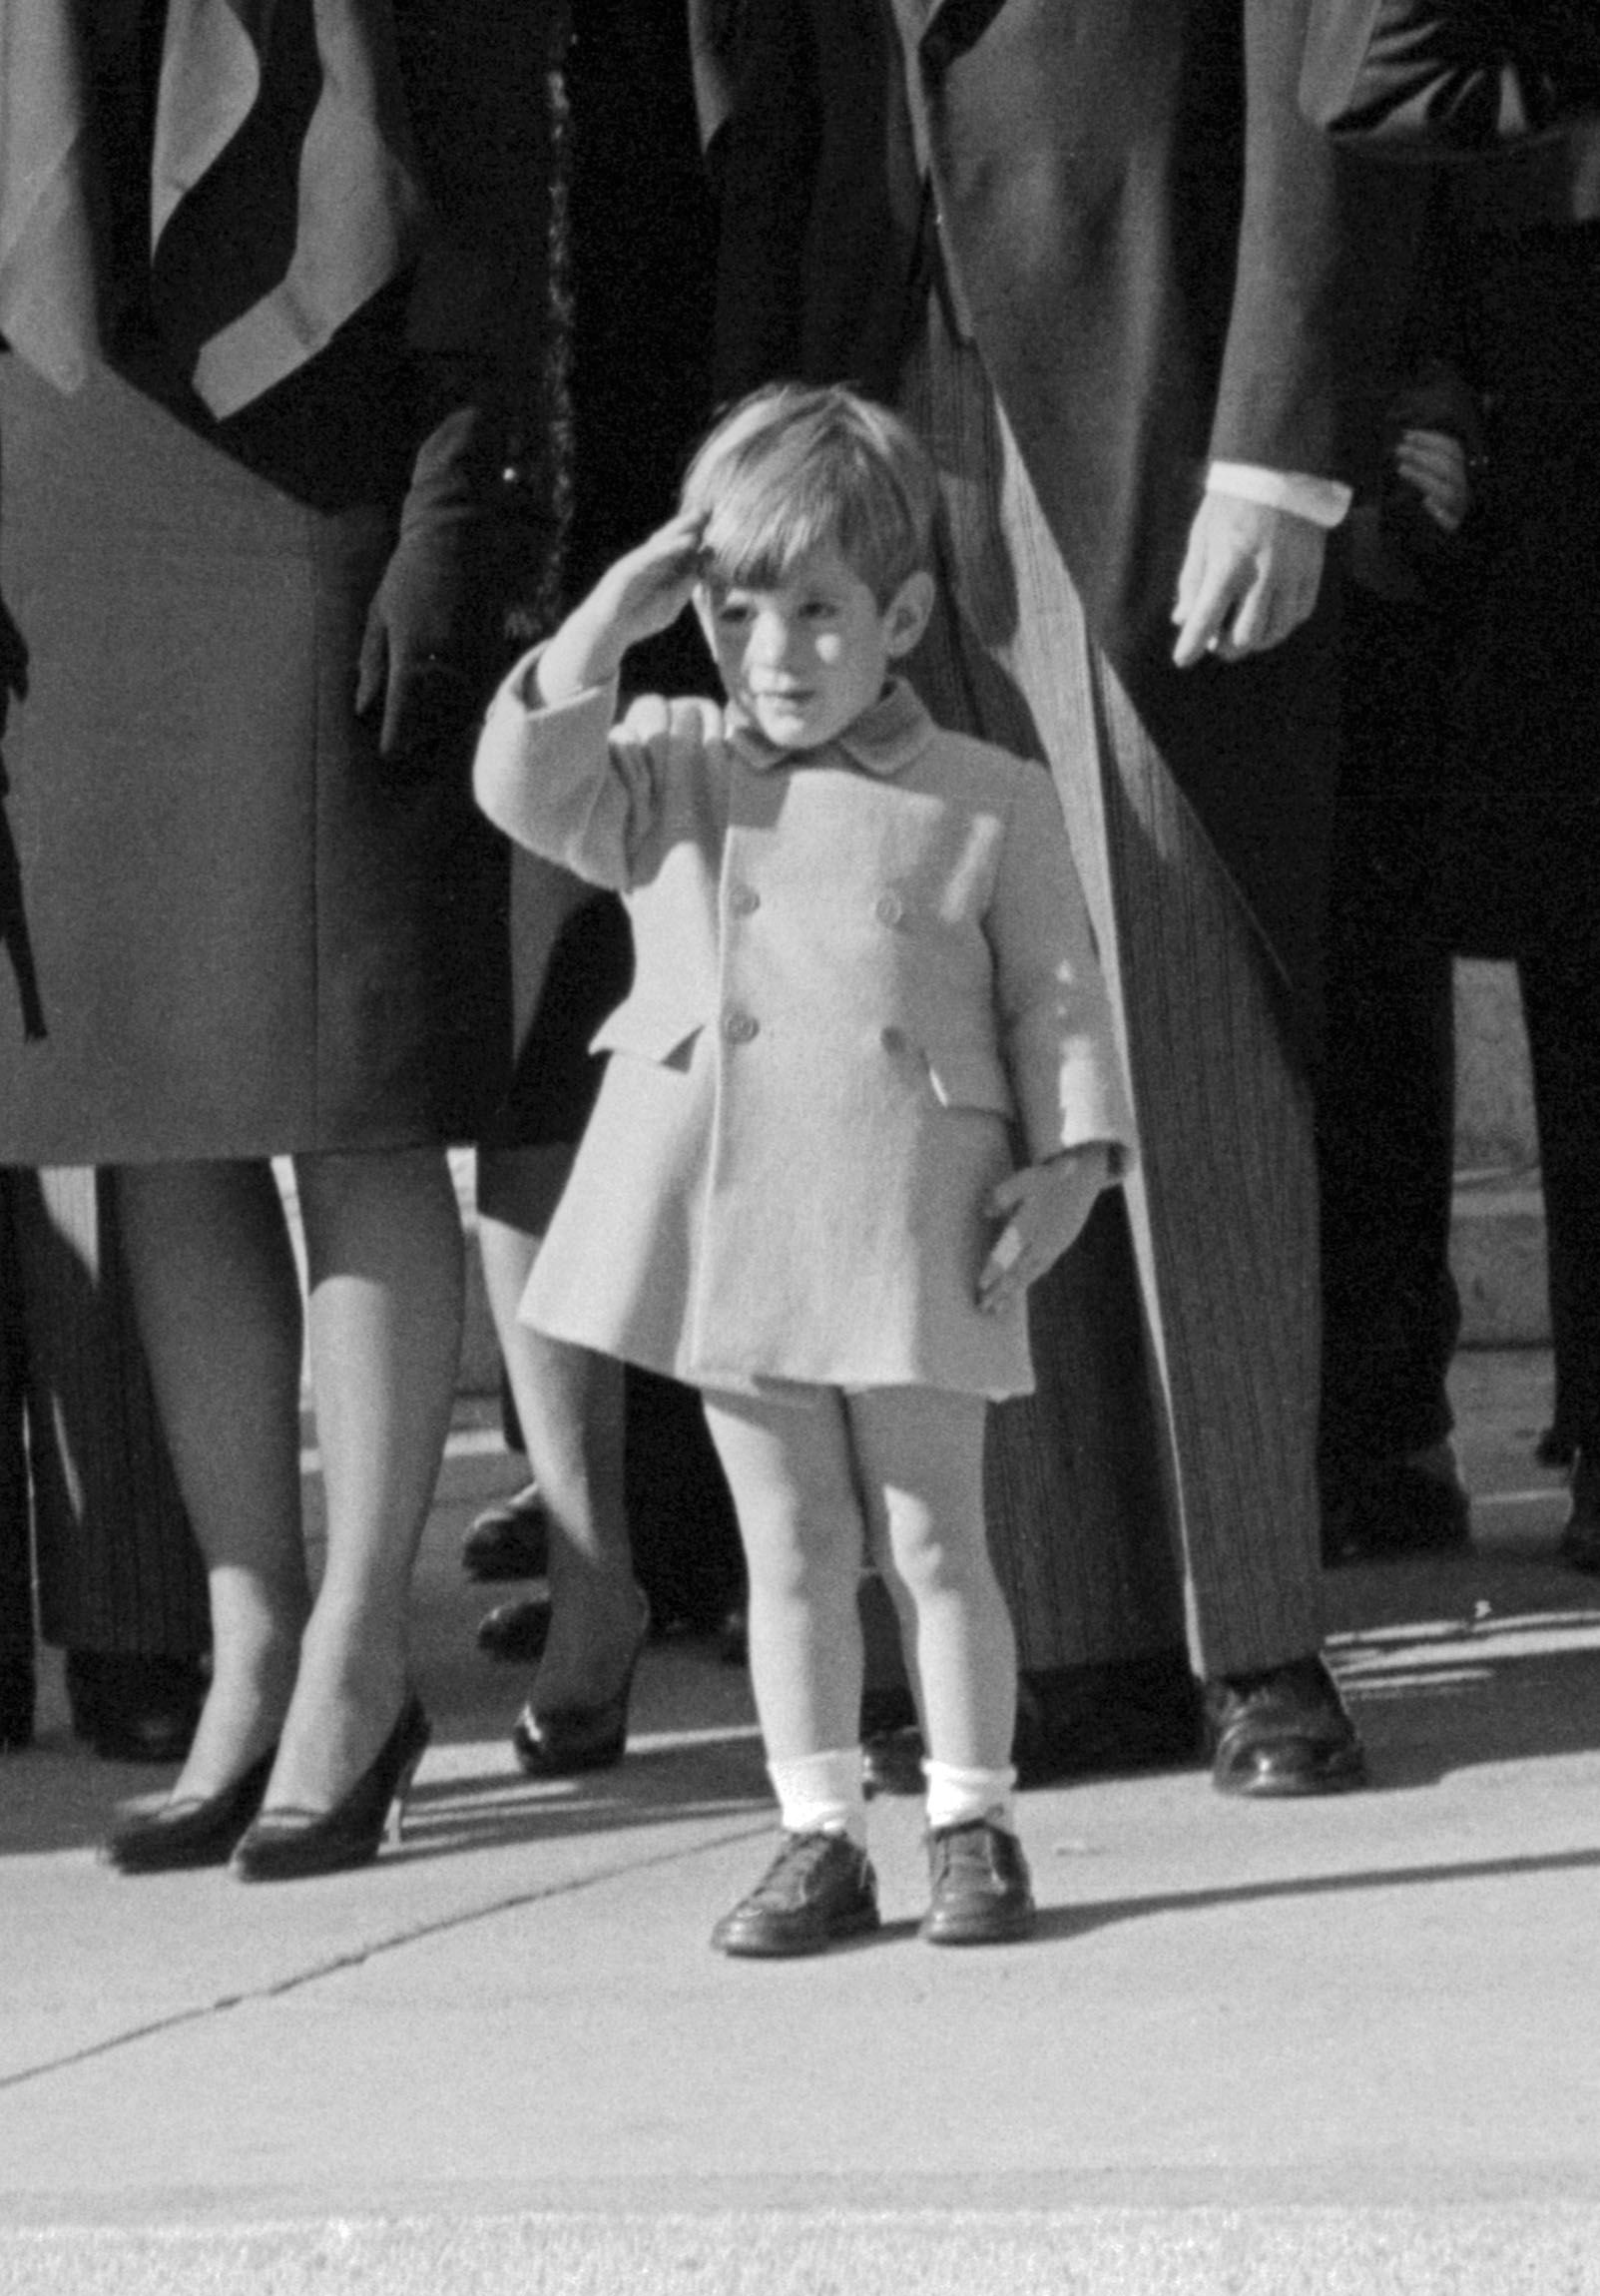 Three-year-old John F. Kennedy Jr. salutes as the casket of his father, the late President John F. Kennedy, as he's carried from St. Matthew's Cathedral in Washington, D.C. on November 25, 1963.